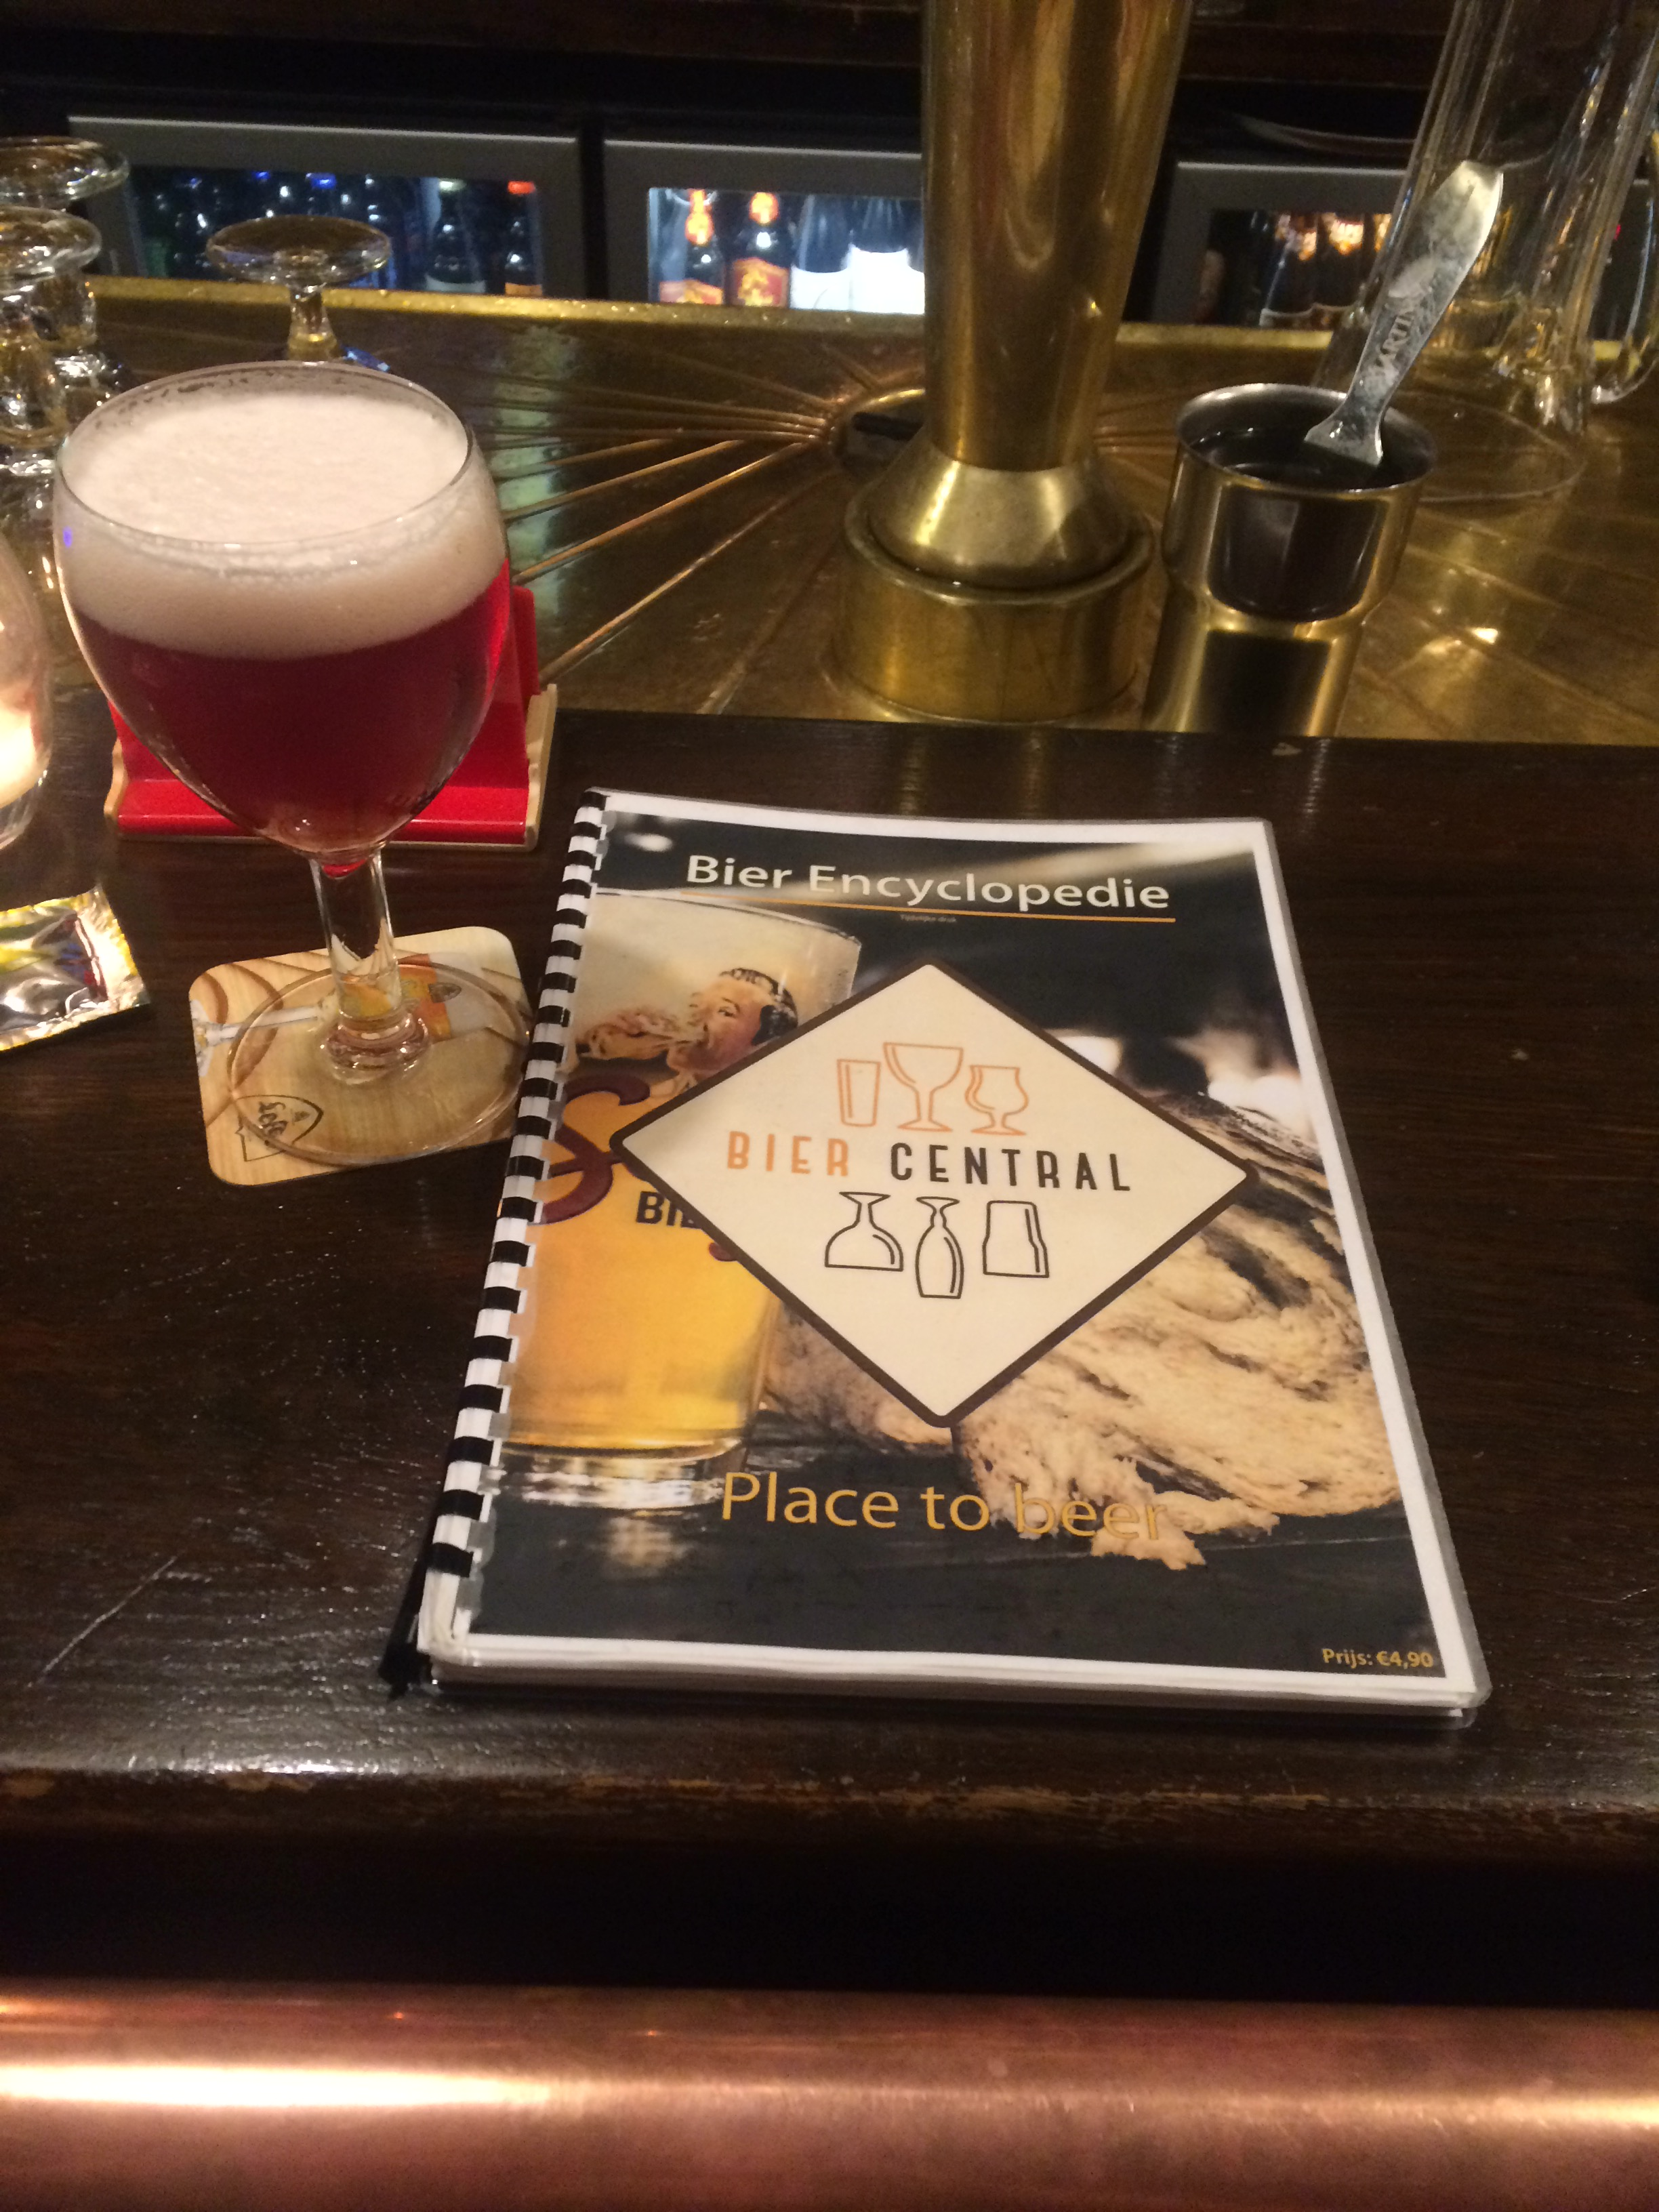 Antwerp Bier Central,300 beers in the Encyclopedie